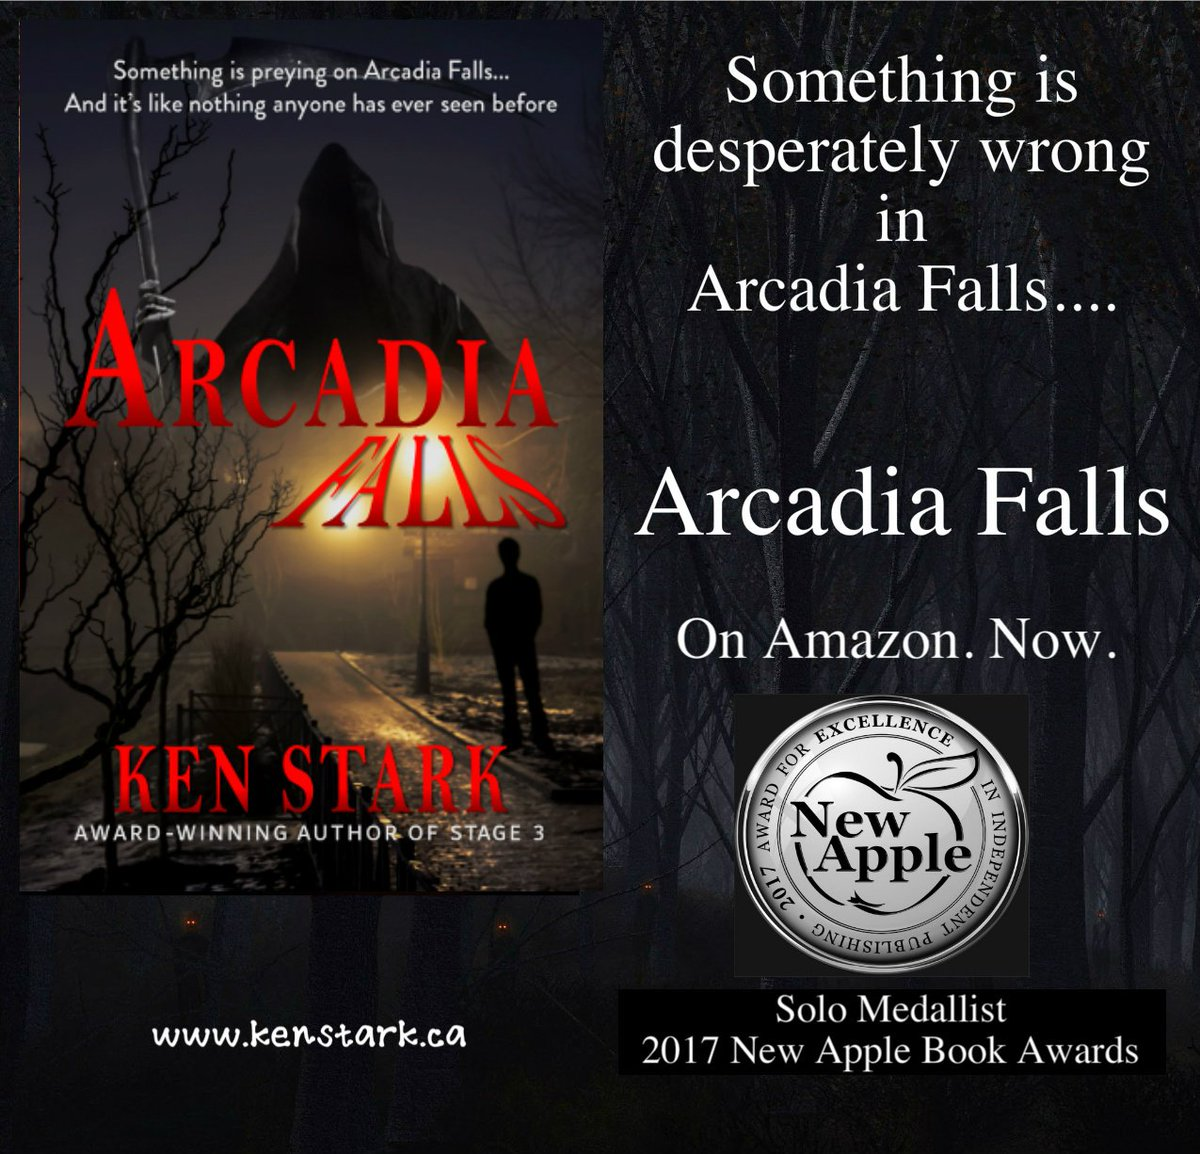 &quot;It&#39;s like he vanished off the face of the Earth...&quot;   http:// amazon.com/dp/B077VVQVL4  &nbsp;   #horror #mystery #paranormal #monster #thriller #IARTG @NewAppleAwards #ArcadiaFalls #FREE w/ #KindleUnlimited<br>http://pic.twitter.com/hyV331IIB7